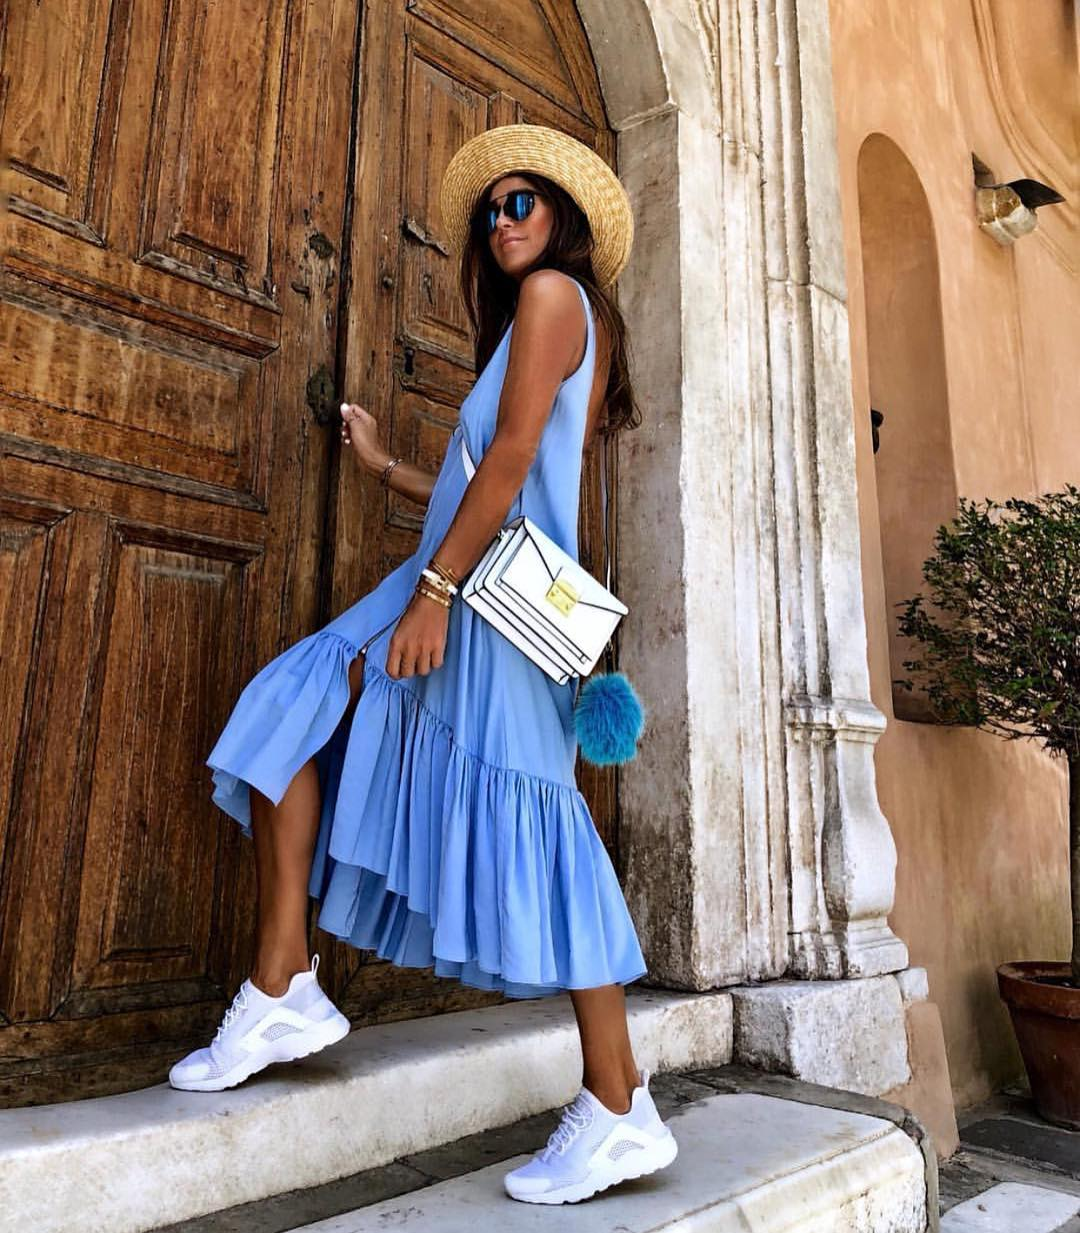 Light Blue Sleeveless Midi Dress With White Sneakers And Straw Wide Brim Hat 2020